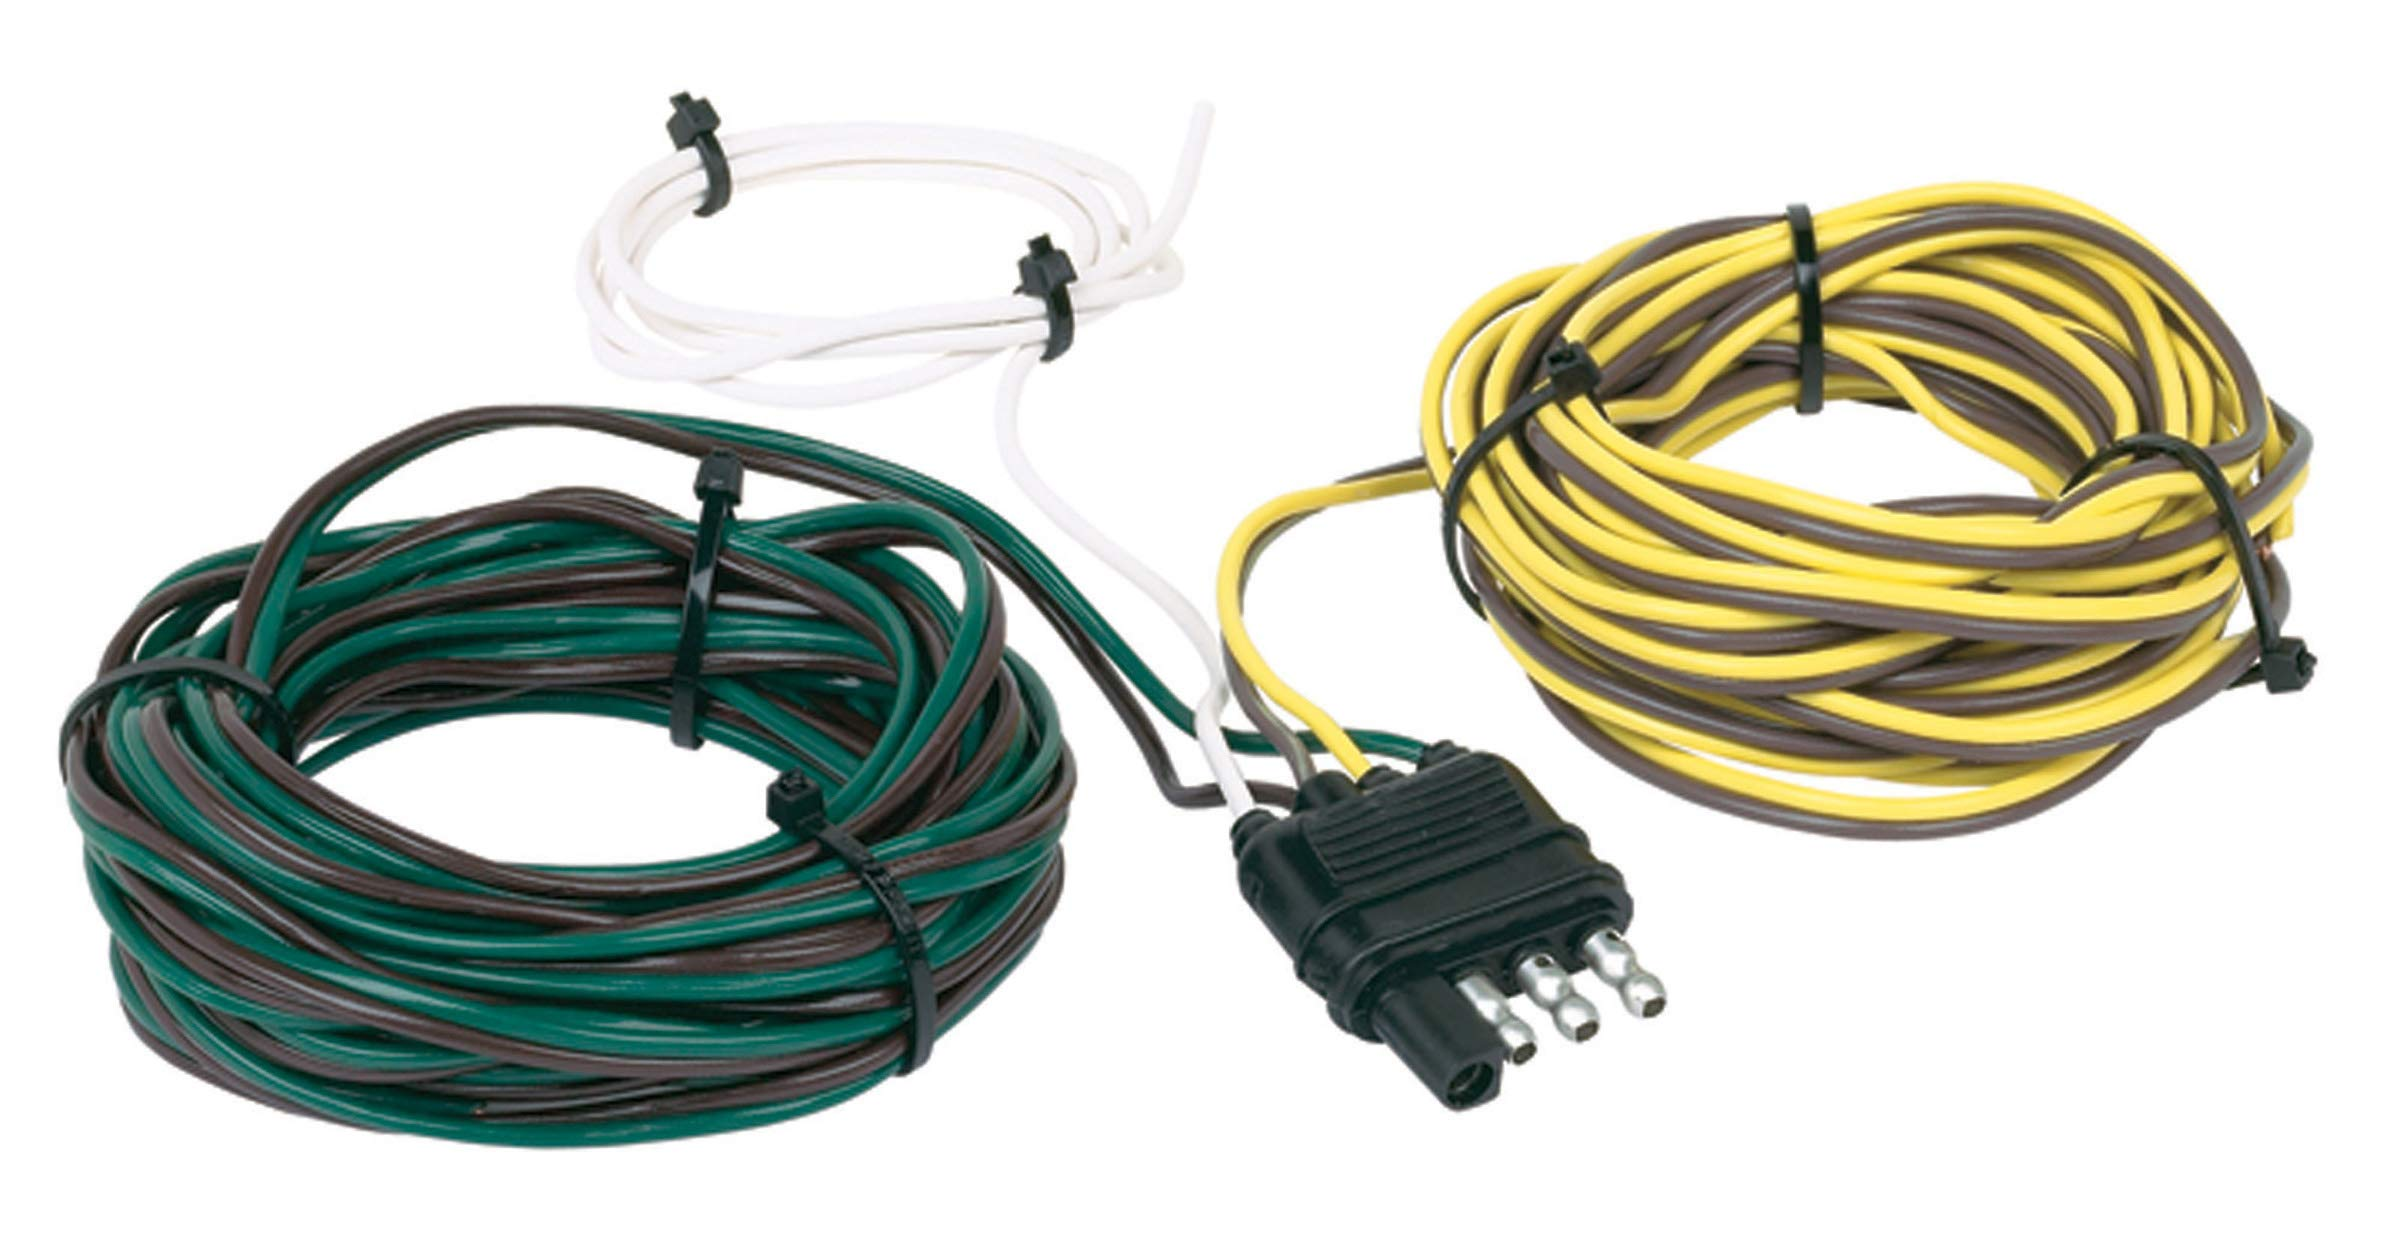 Hopkins 48265 30' 4 Wire Flat Trailer Side Y-Harness Connector by Hopkins Towing Solutions